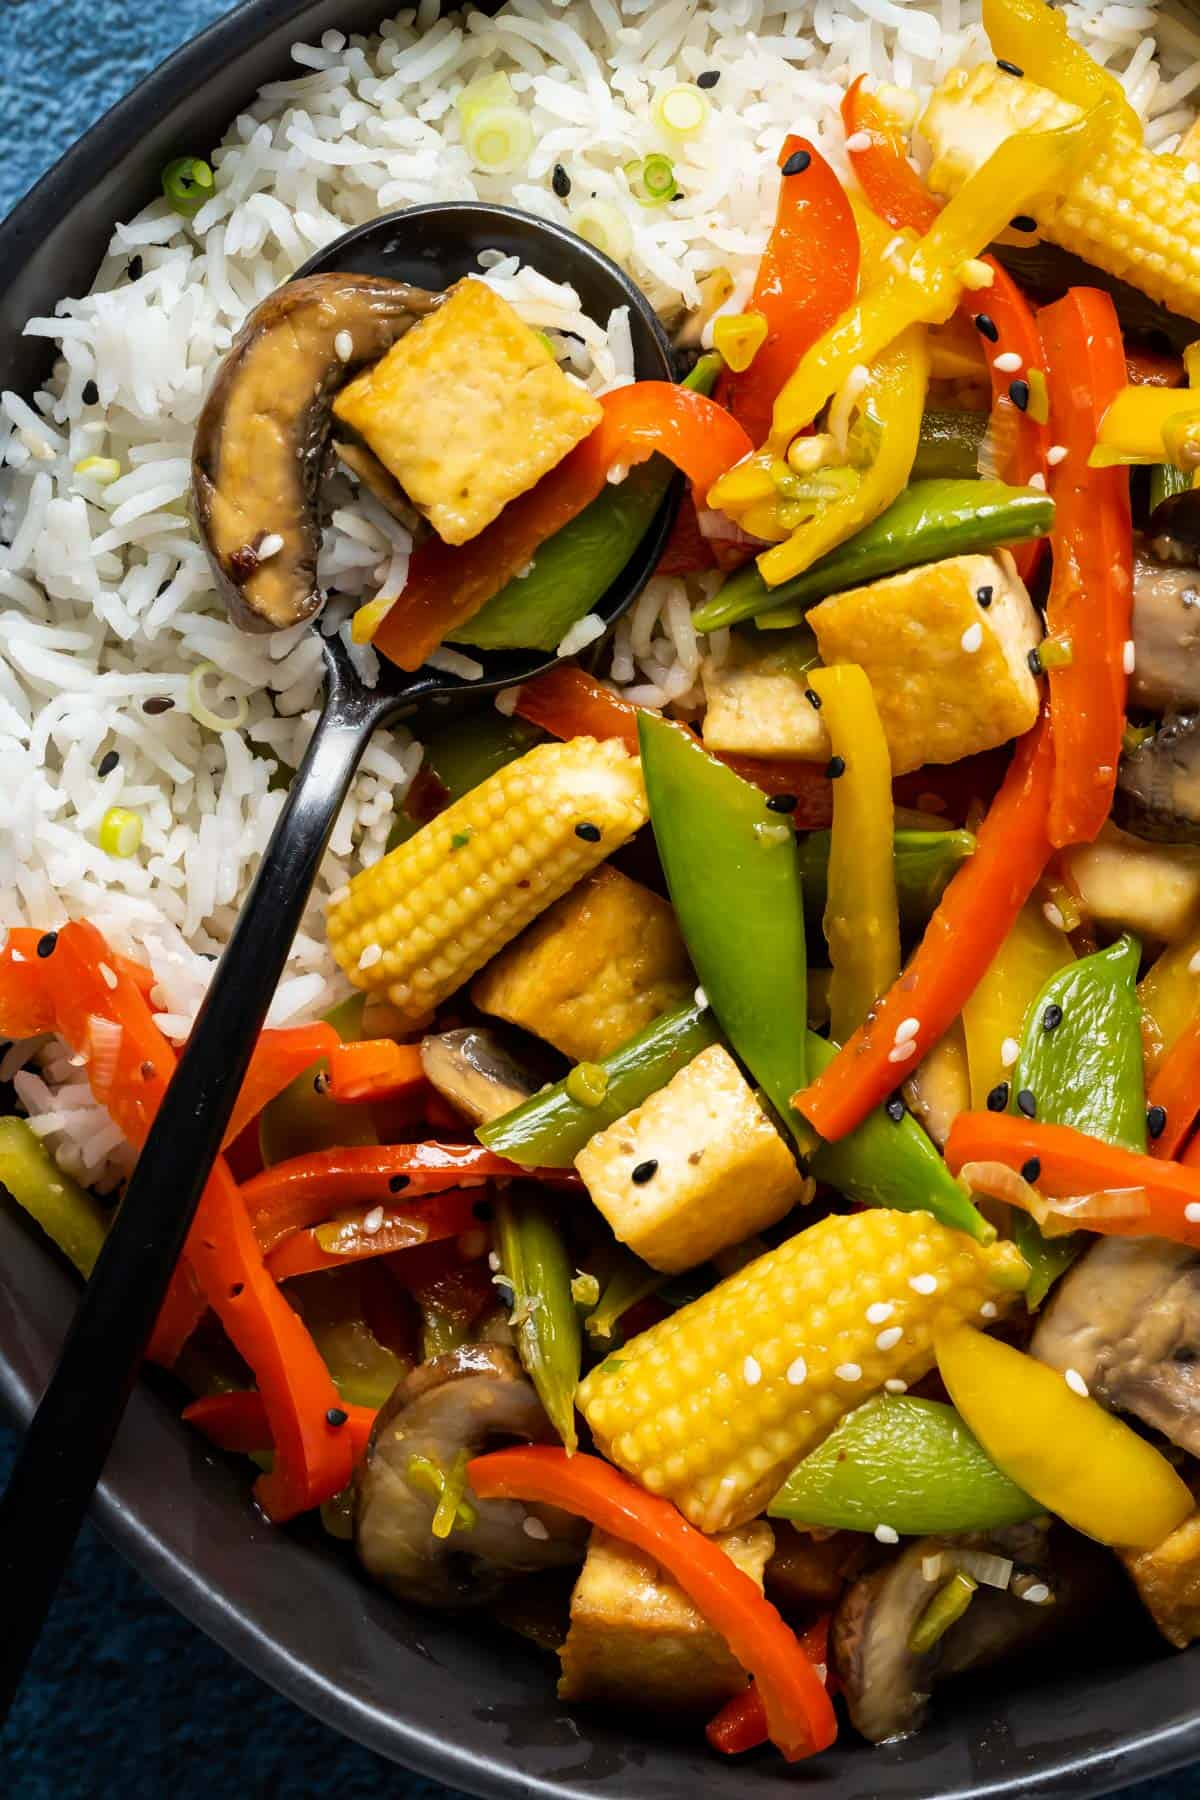 Vegan stir fry and rice in a black bowl with a spoon.